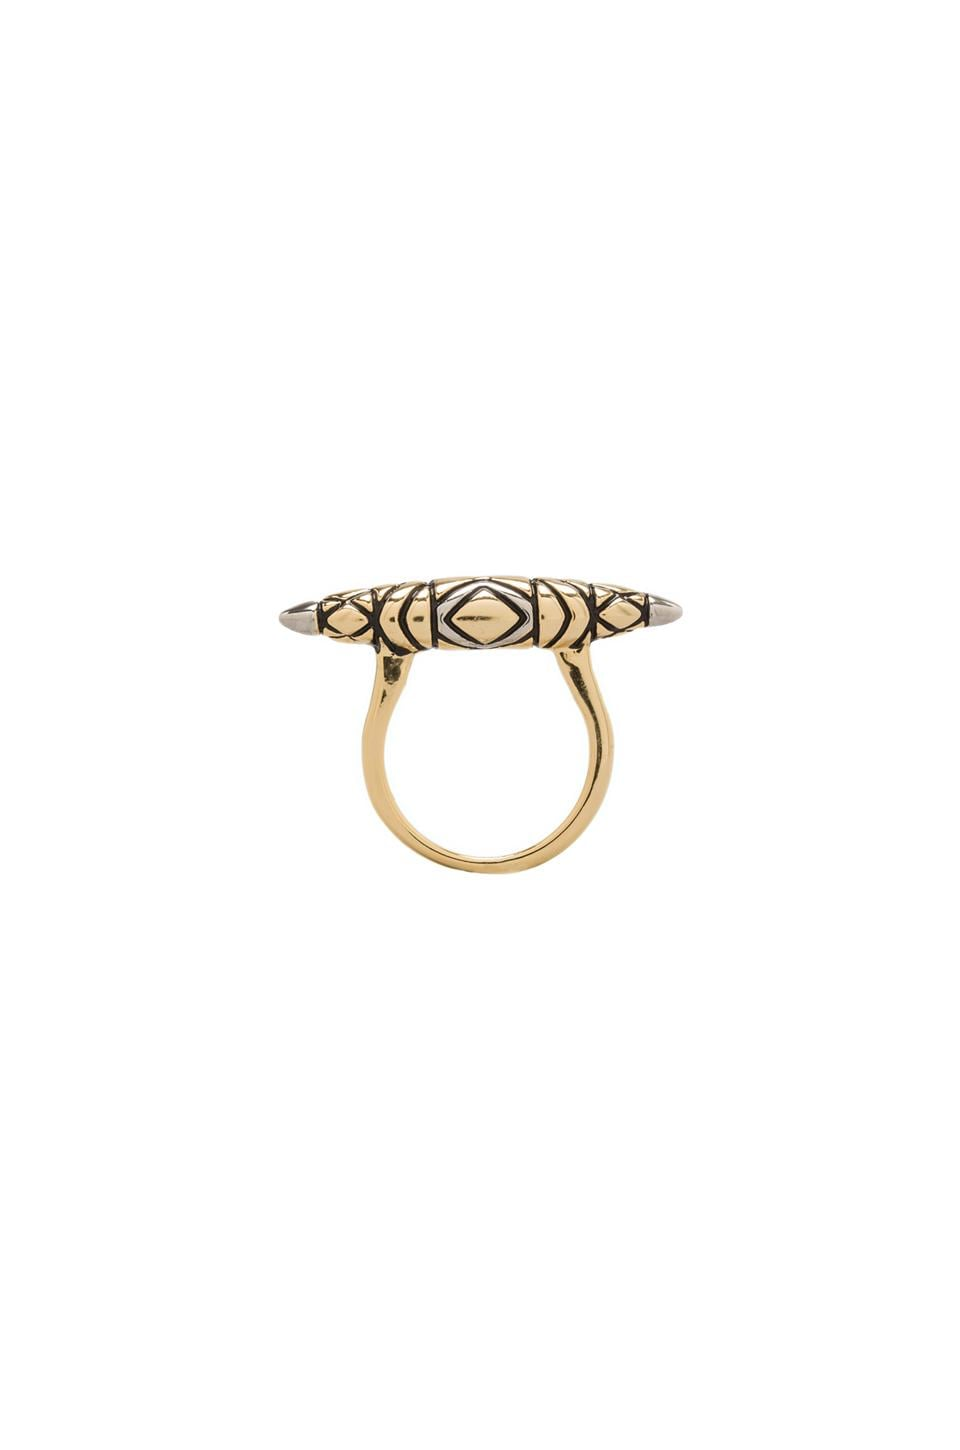 House of Harlow 1960 House of Harlow Tribal Totem Ring in Two Tone